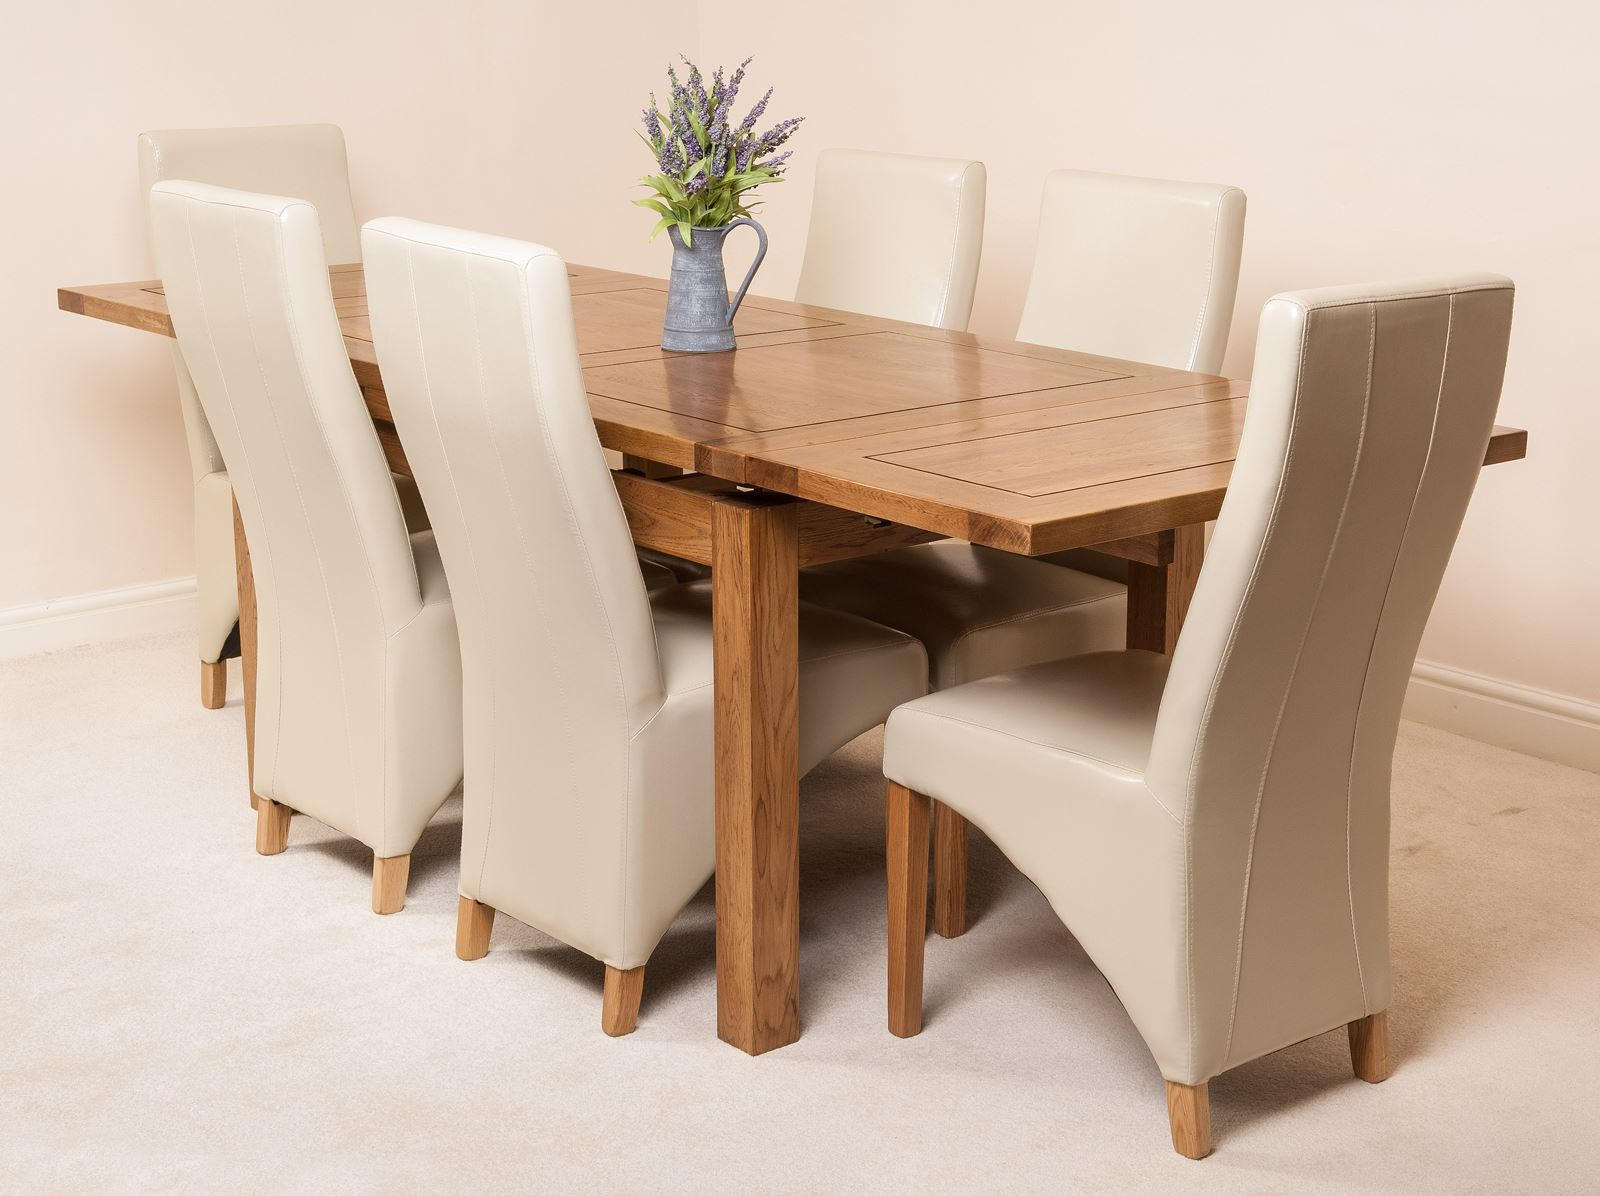 FARMHOUSE RUSTIC SOLID OAK 160cm EXTENDING DINING TABLE & 6 LOLA LEATHER